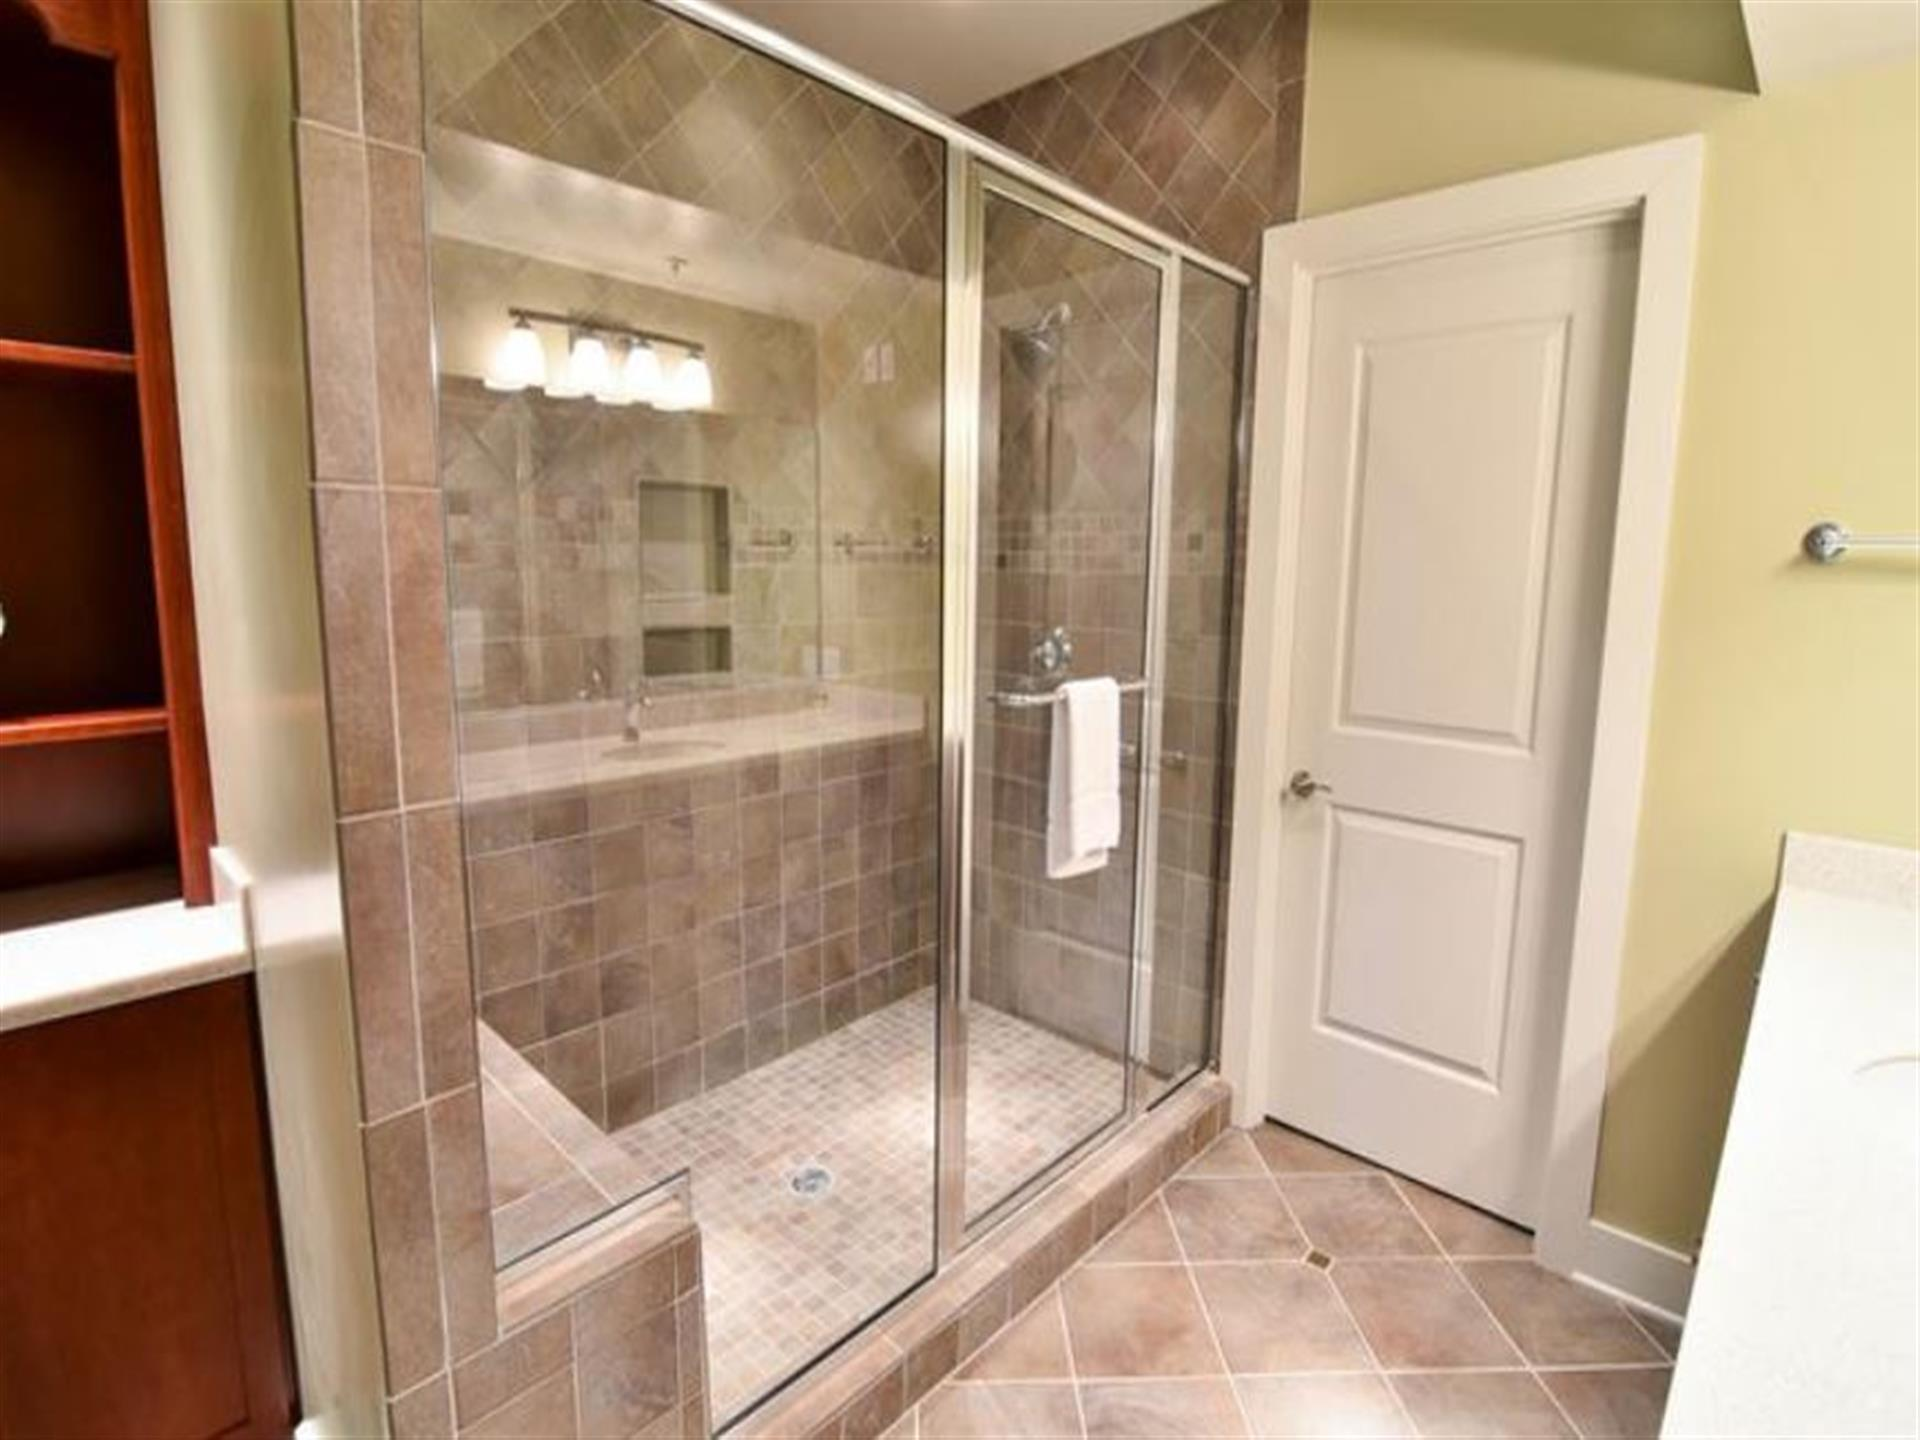 Bathroom with Shower , View of glass door